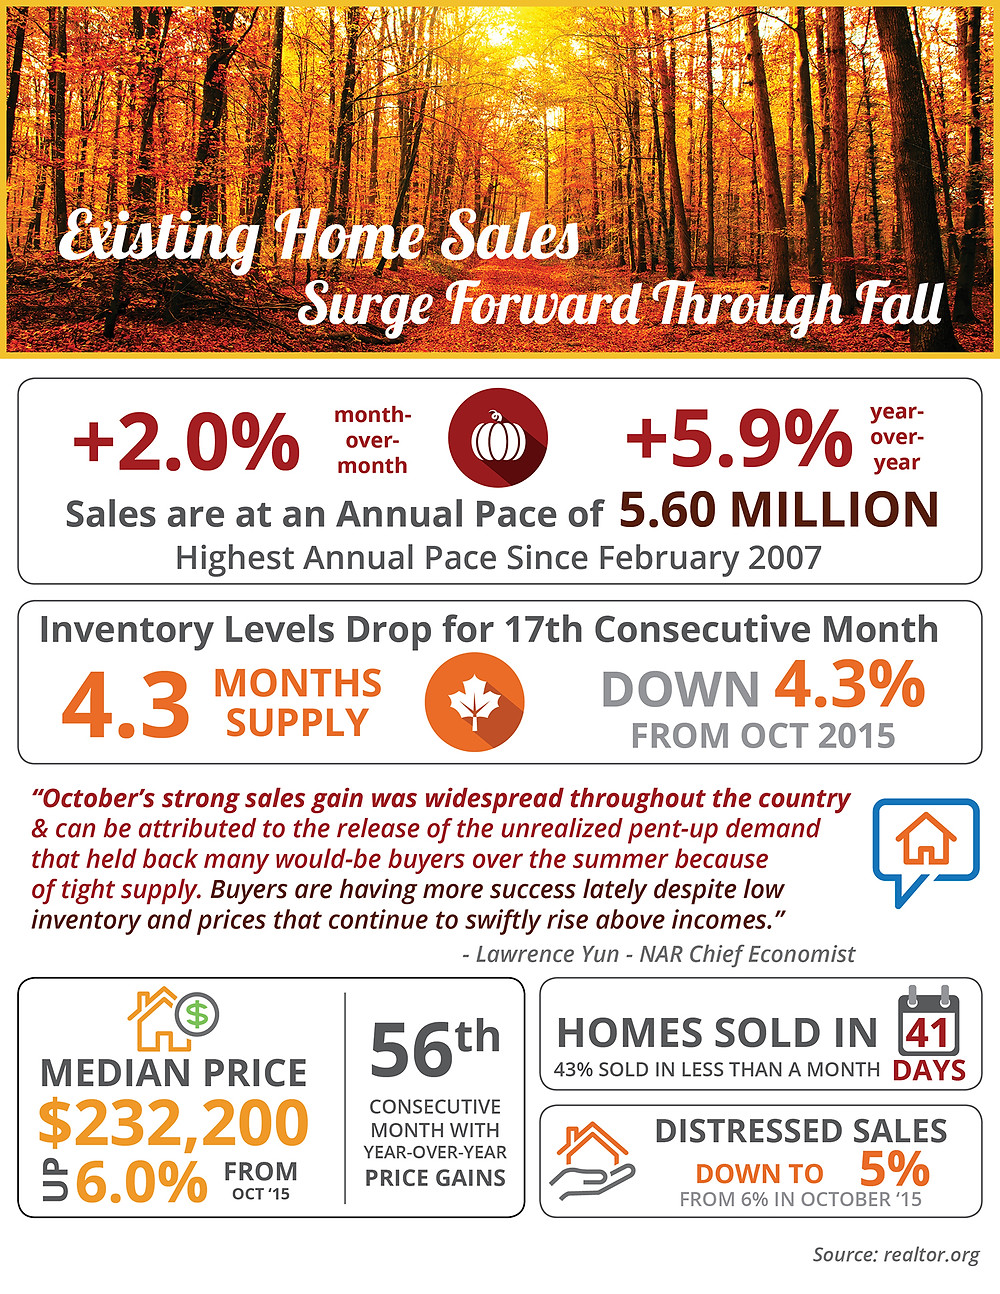 Existing Home Sales Surge Forward Through Fall [INFOGRAPHIC] | Simplifying The Market